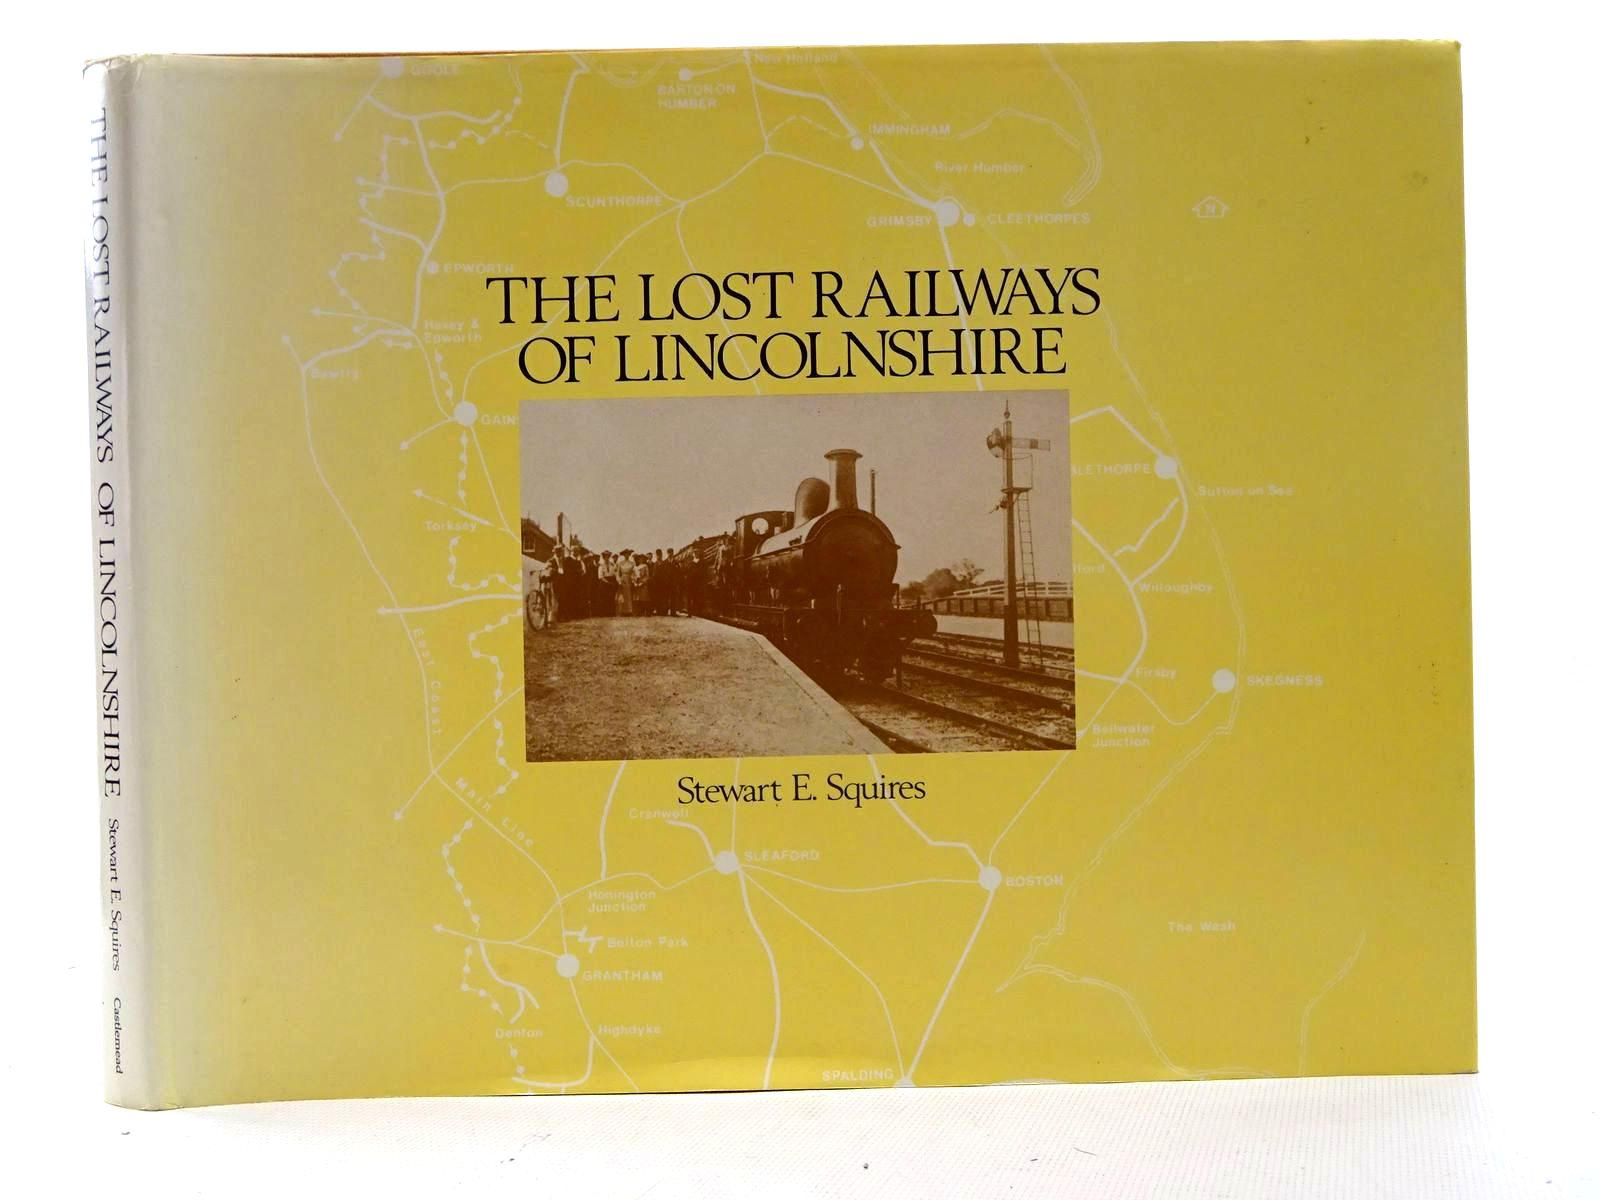 Photo of THE LOST RAILWAYS OF LINCOLNSHIRE written by Squires, Stewart E. published by Castlemead Publications (STOCK CODE: 1816219)  for sale by Stella & Rose's Books